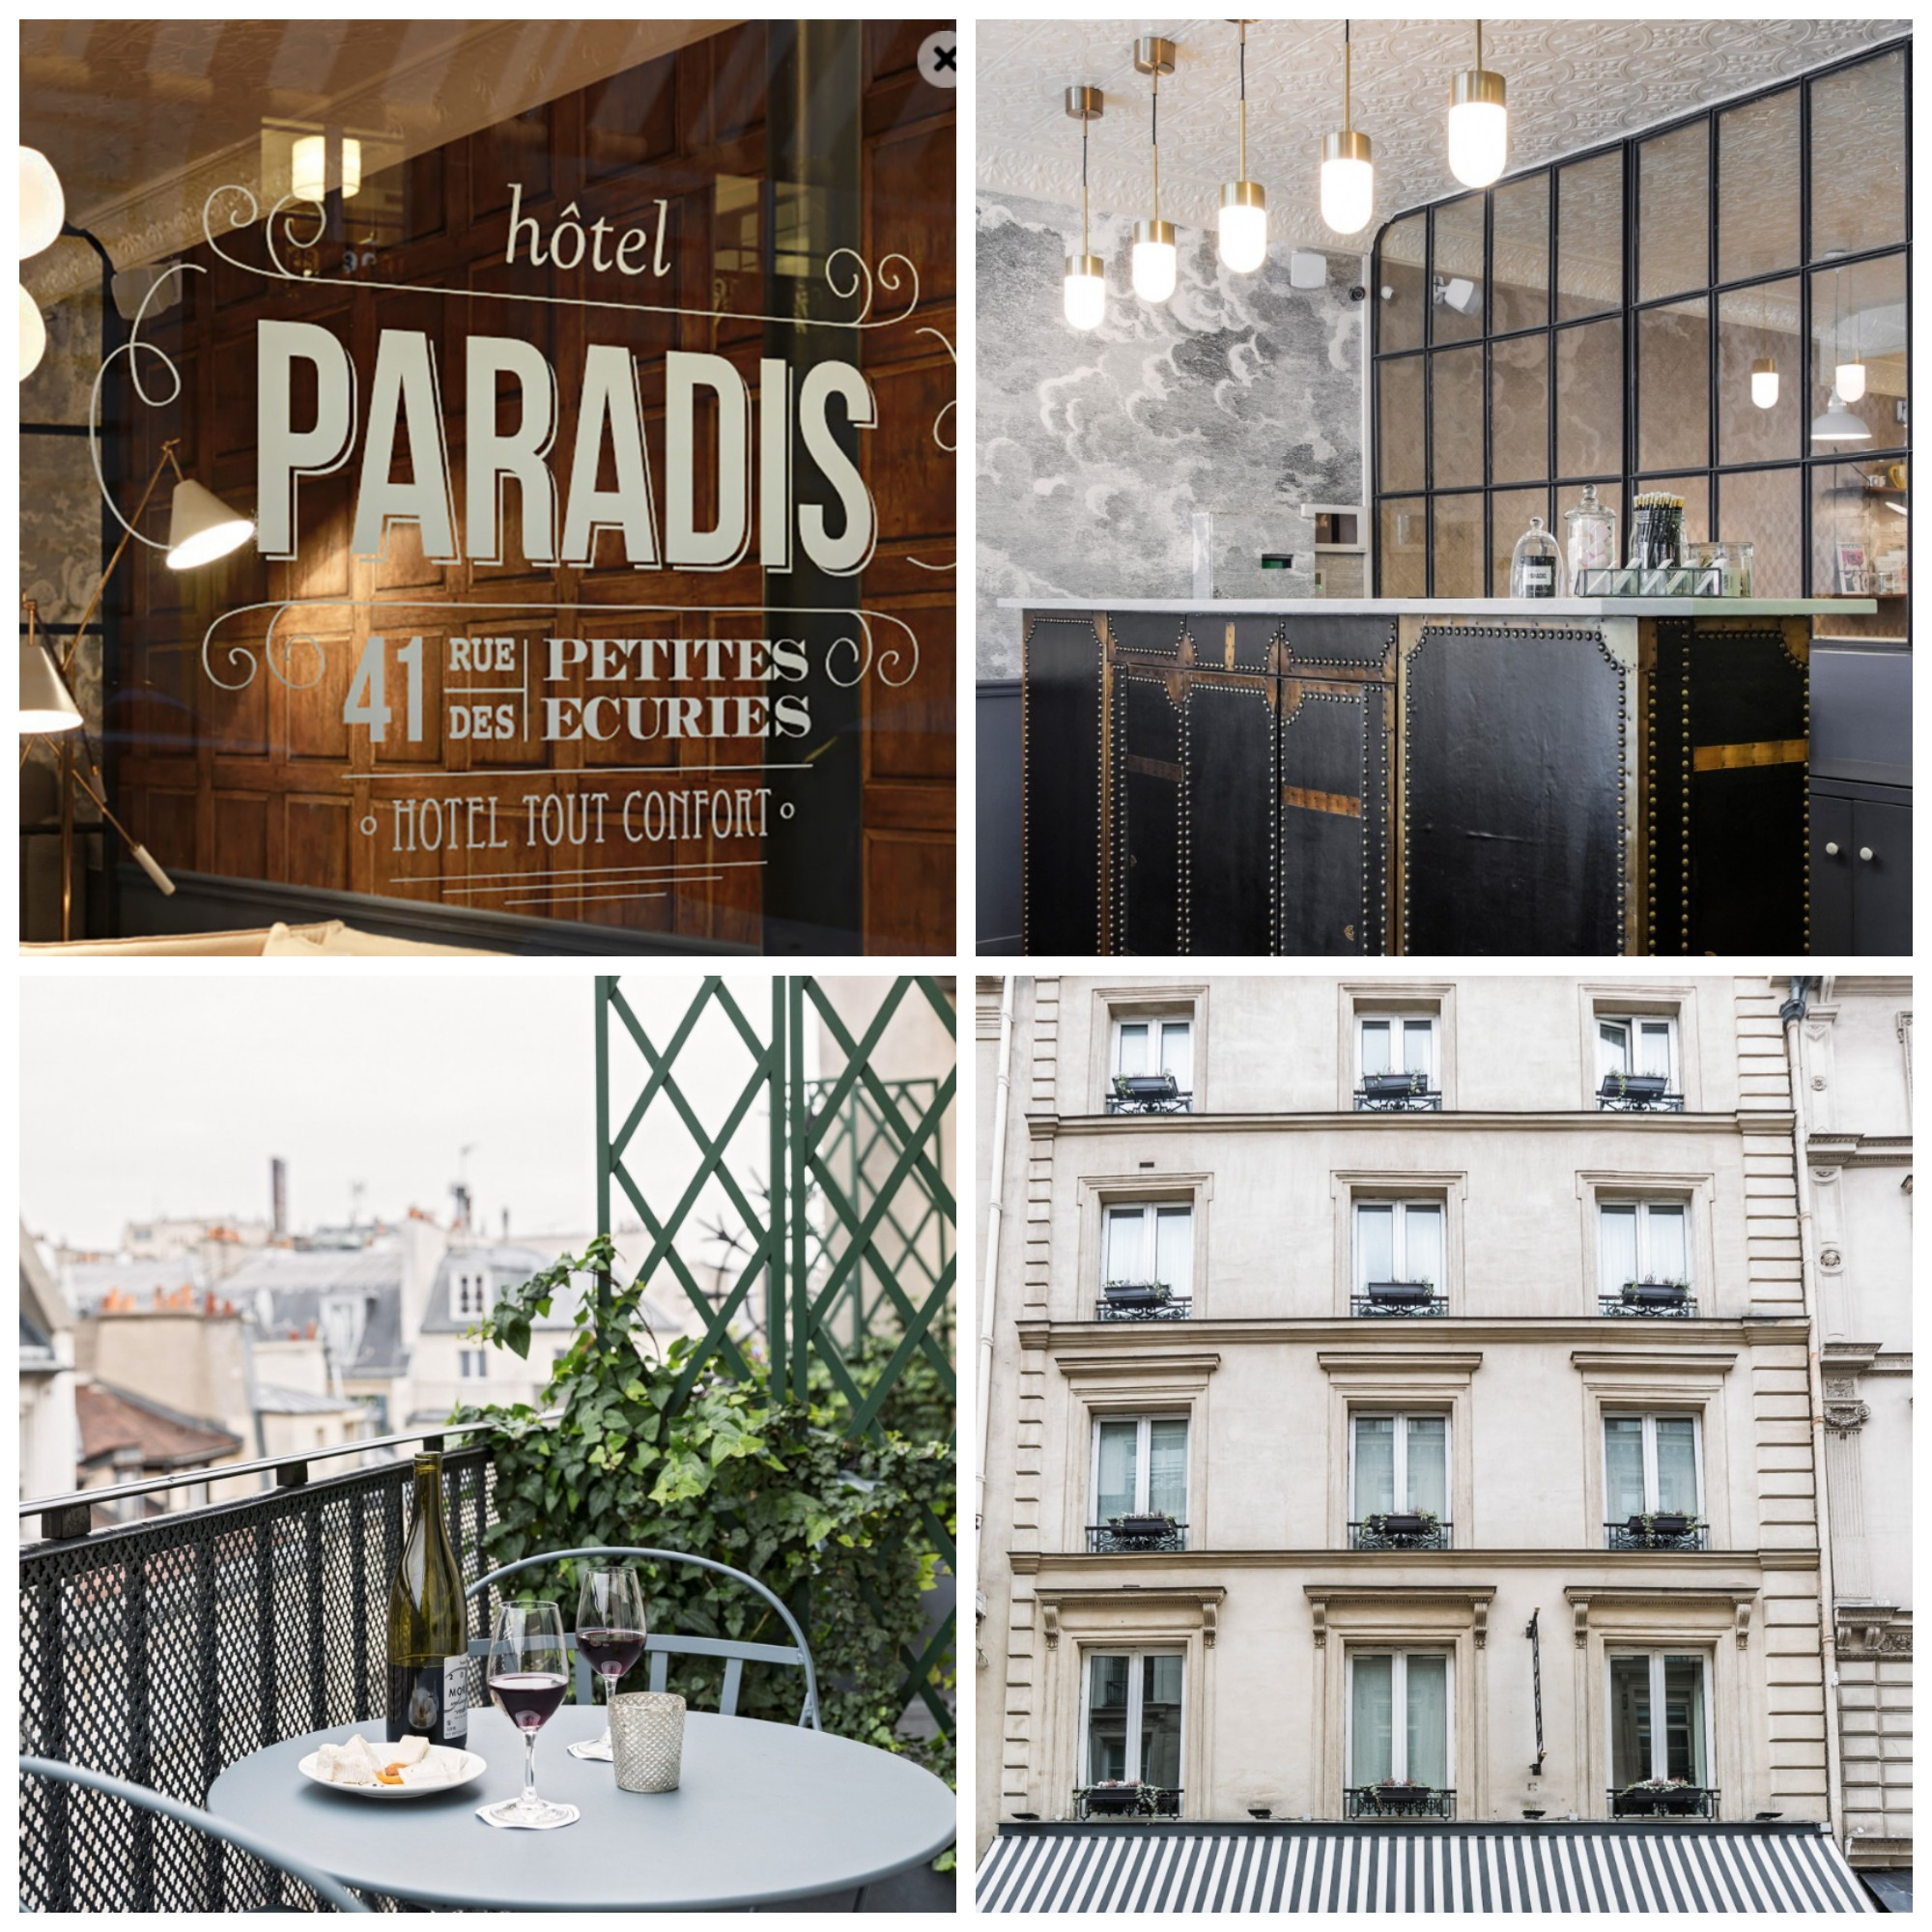 Images by Hotel Paradis Hotel